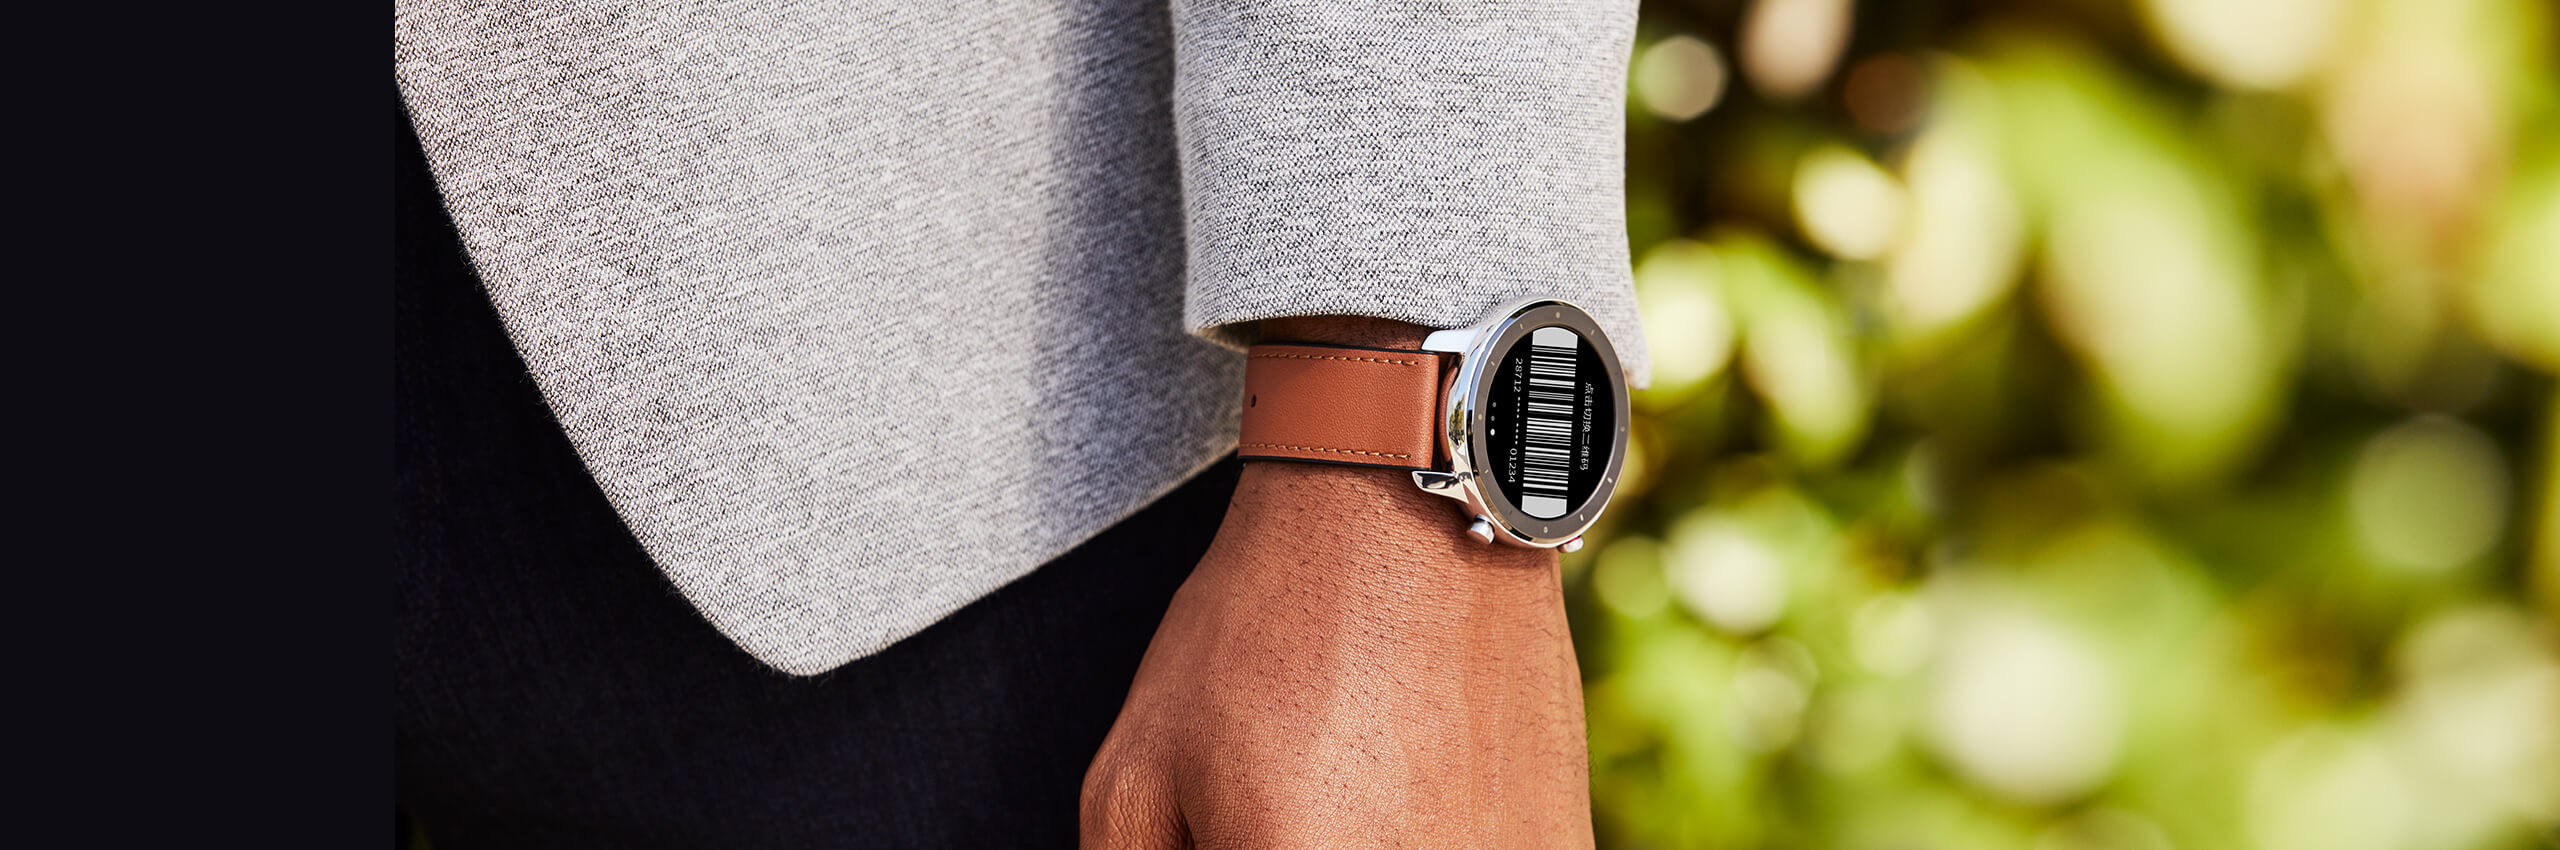 https://xiaomi-store.cz/img/cms/amazfit%20gtr/section-9.jpg